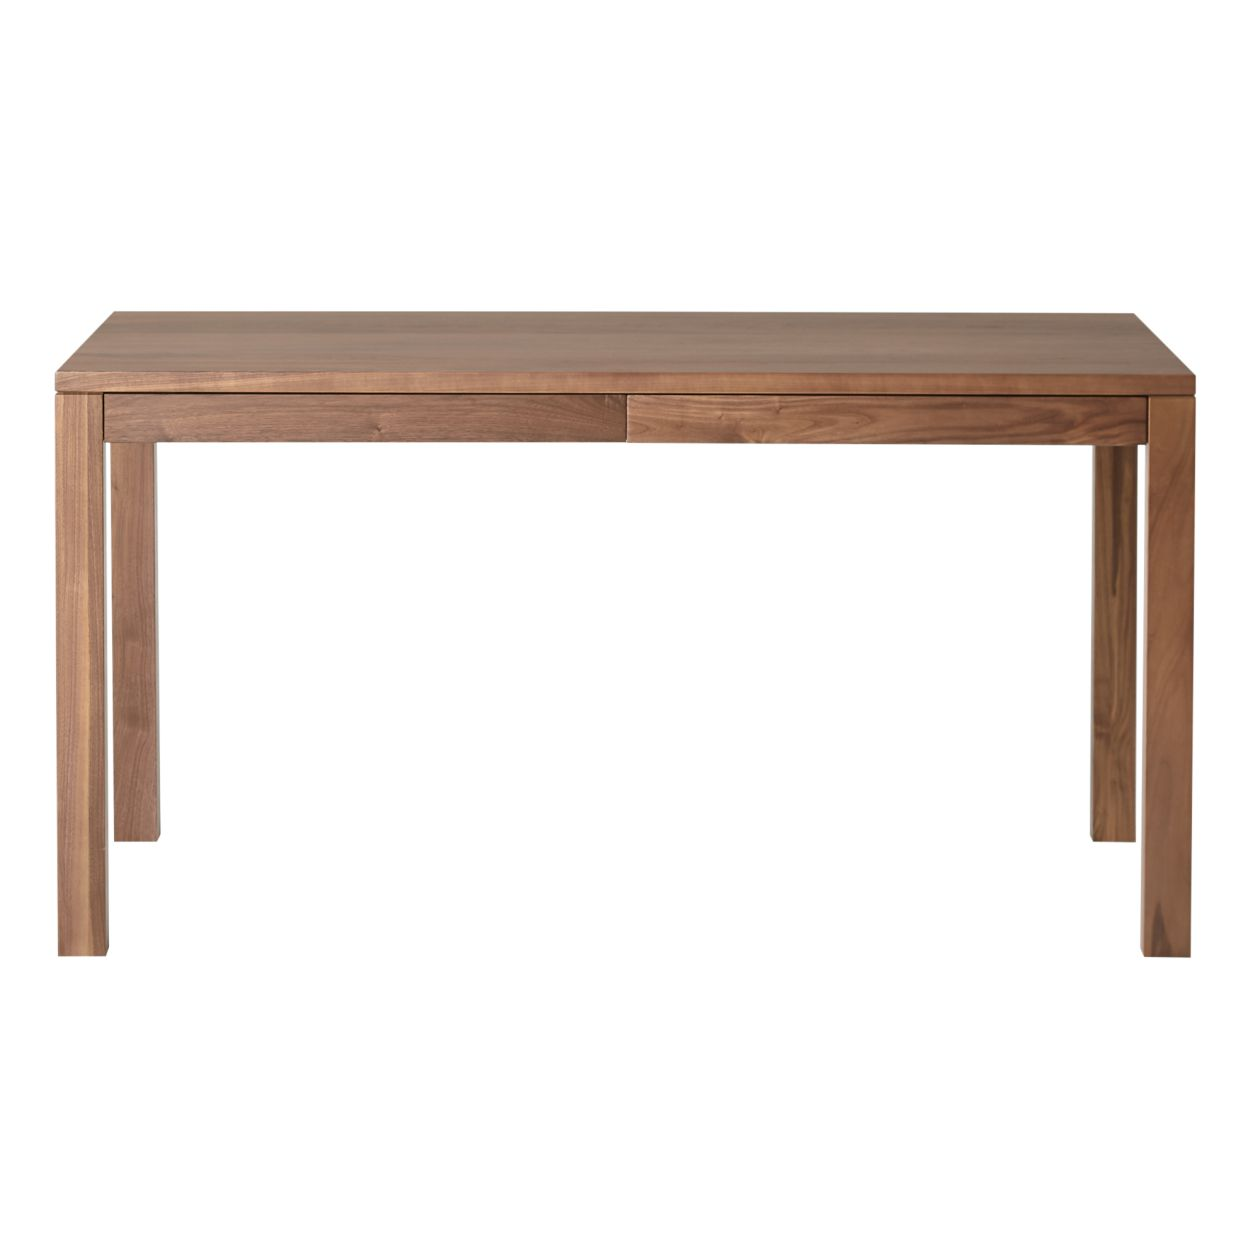 Walnut Wood Table with Drawer - M